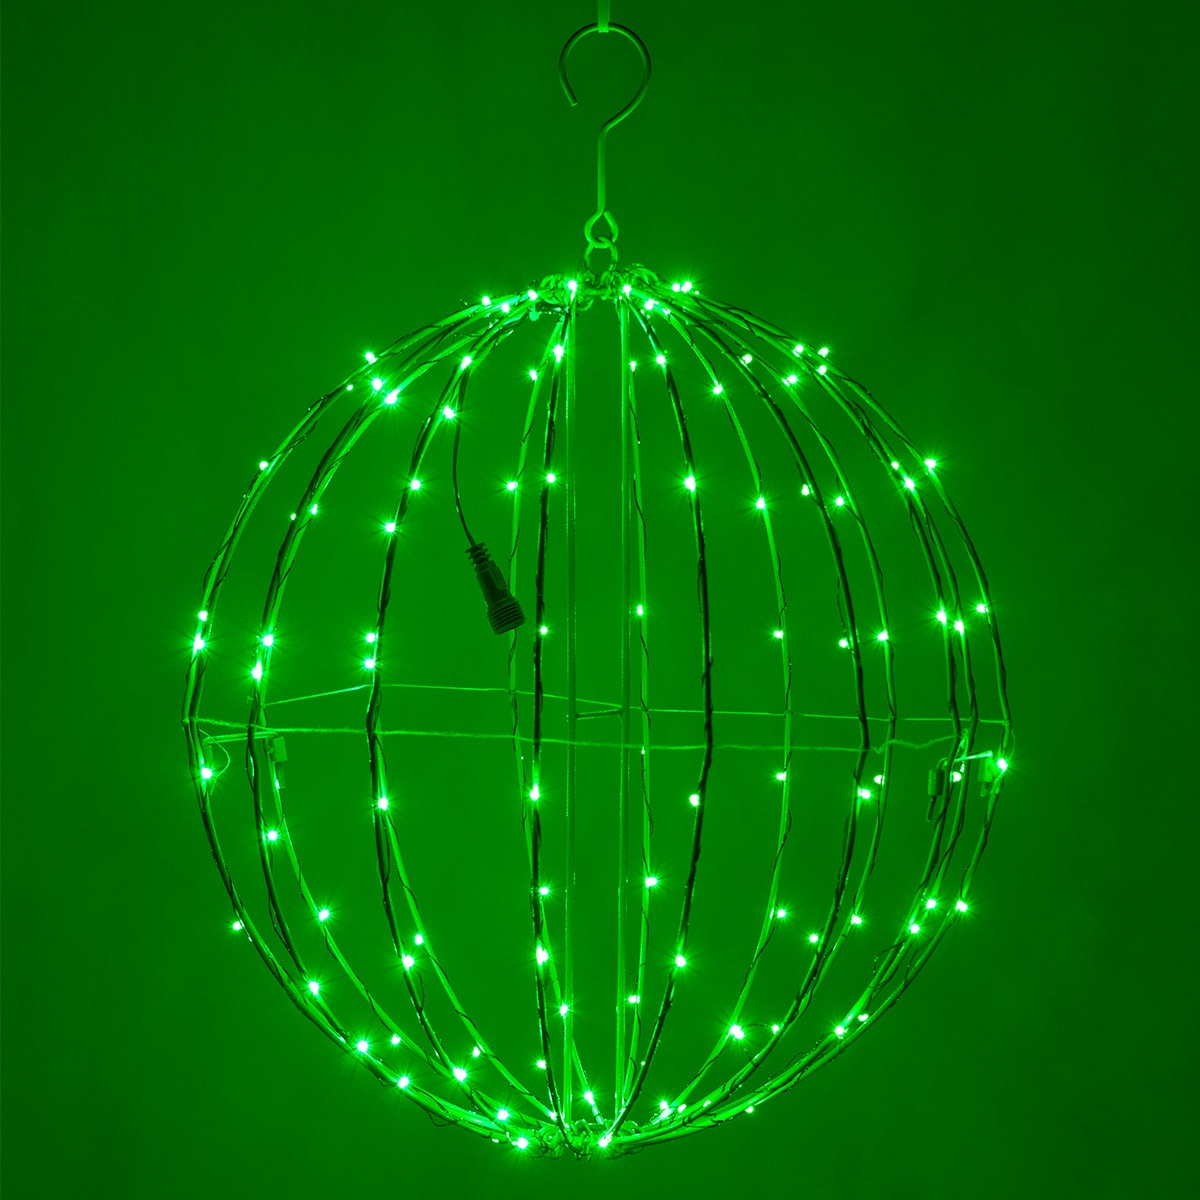 Green Led Fairy Christmas Light Ball Fold Flat Green Frame